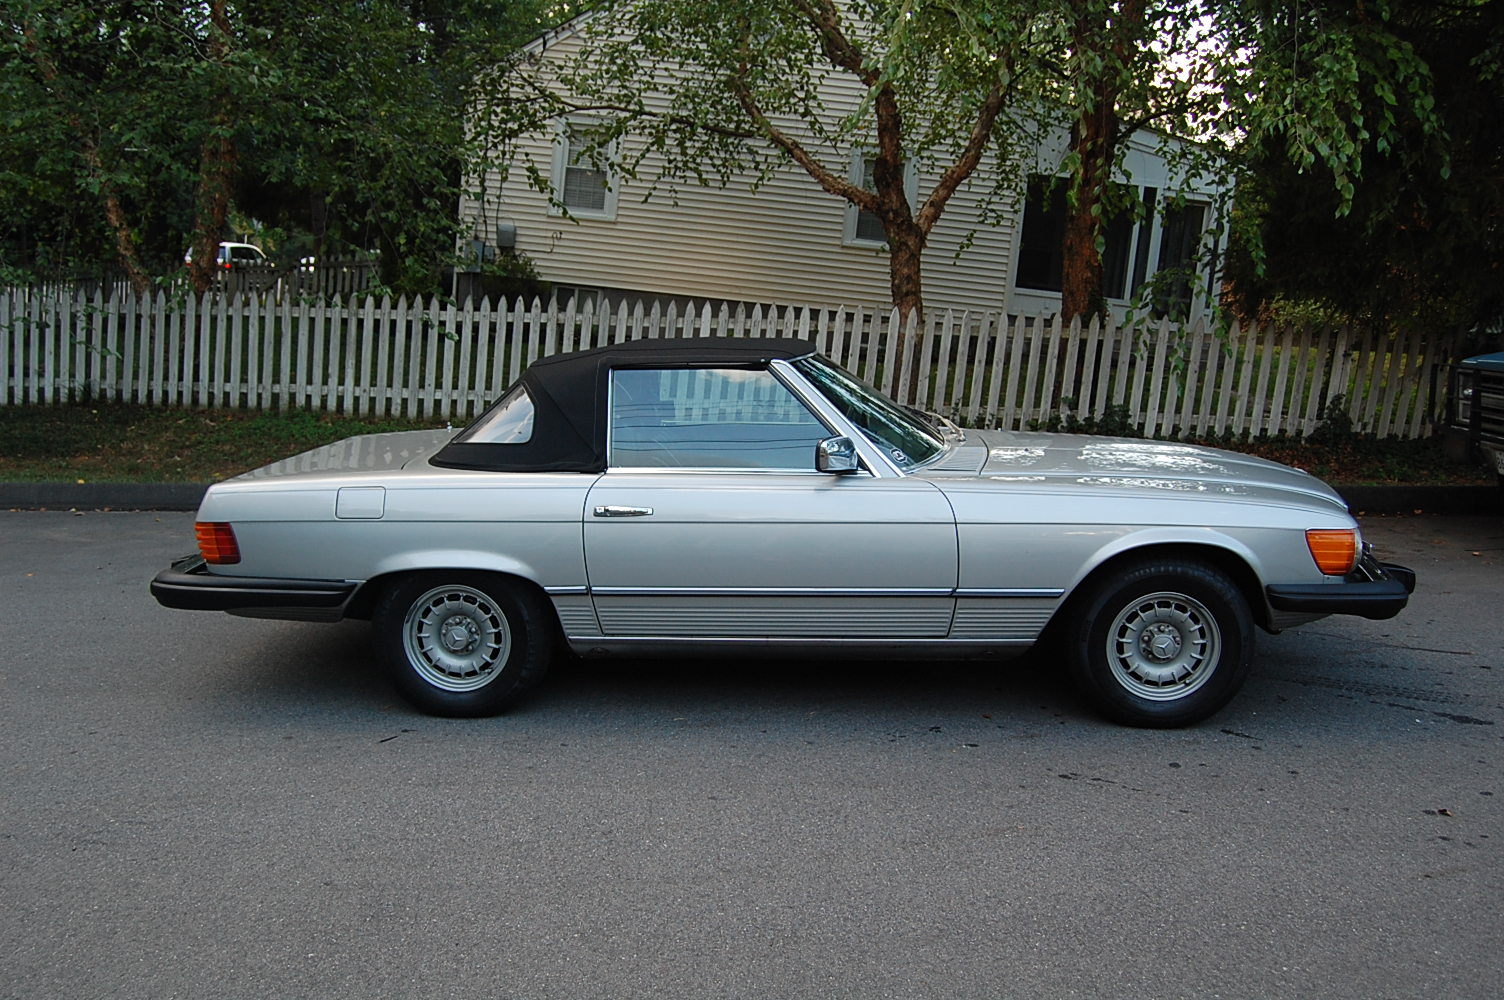 1978 mercedes benz 450sl information and photos momentcar for 1978 mercedes benz 450sl